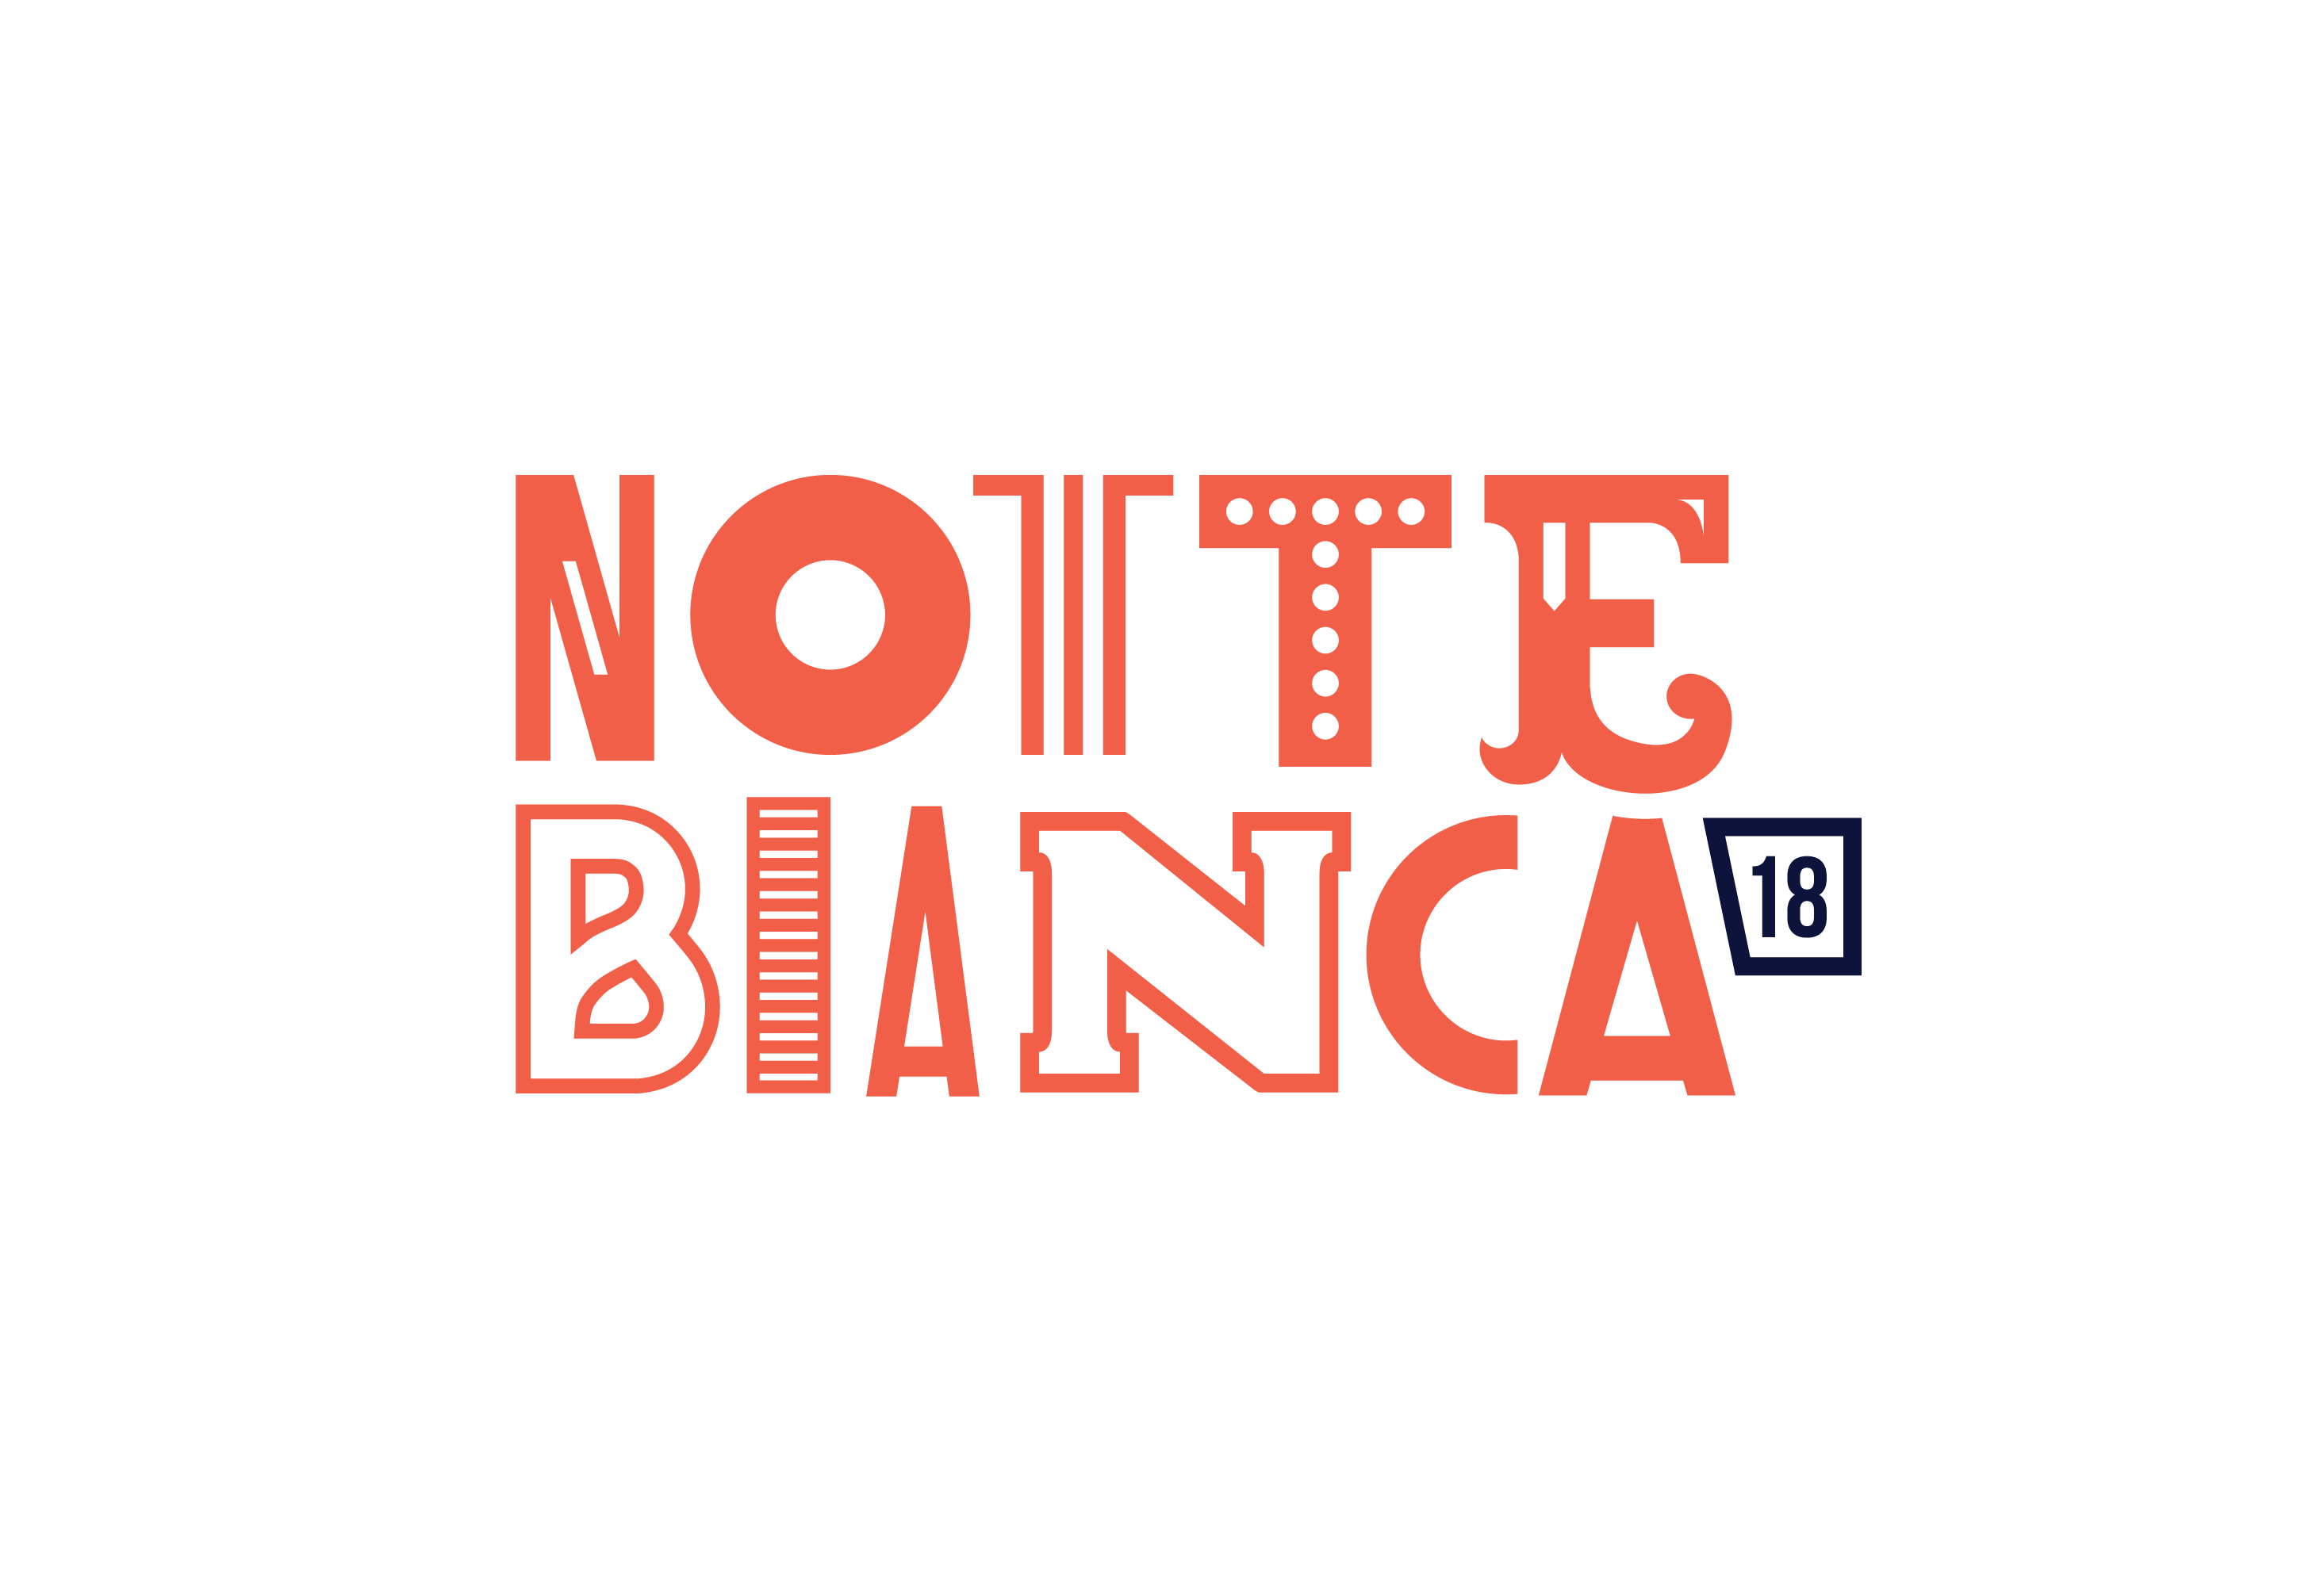 Notte Bianca 2018 06 OCT 18 - 06 OCT 18 VALLETTA